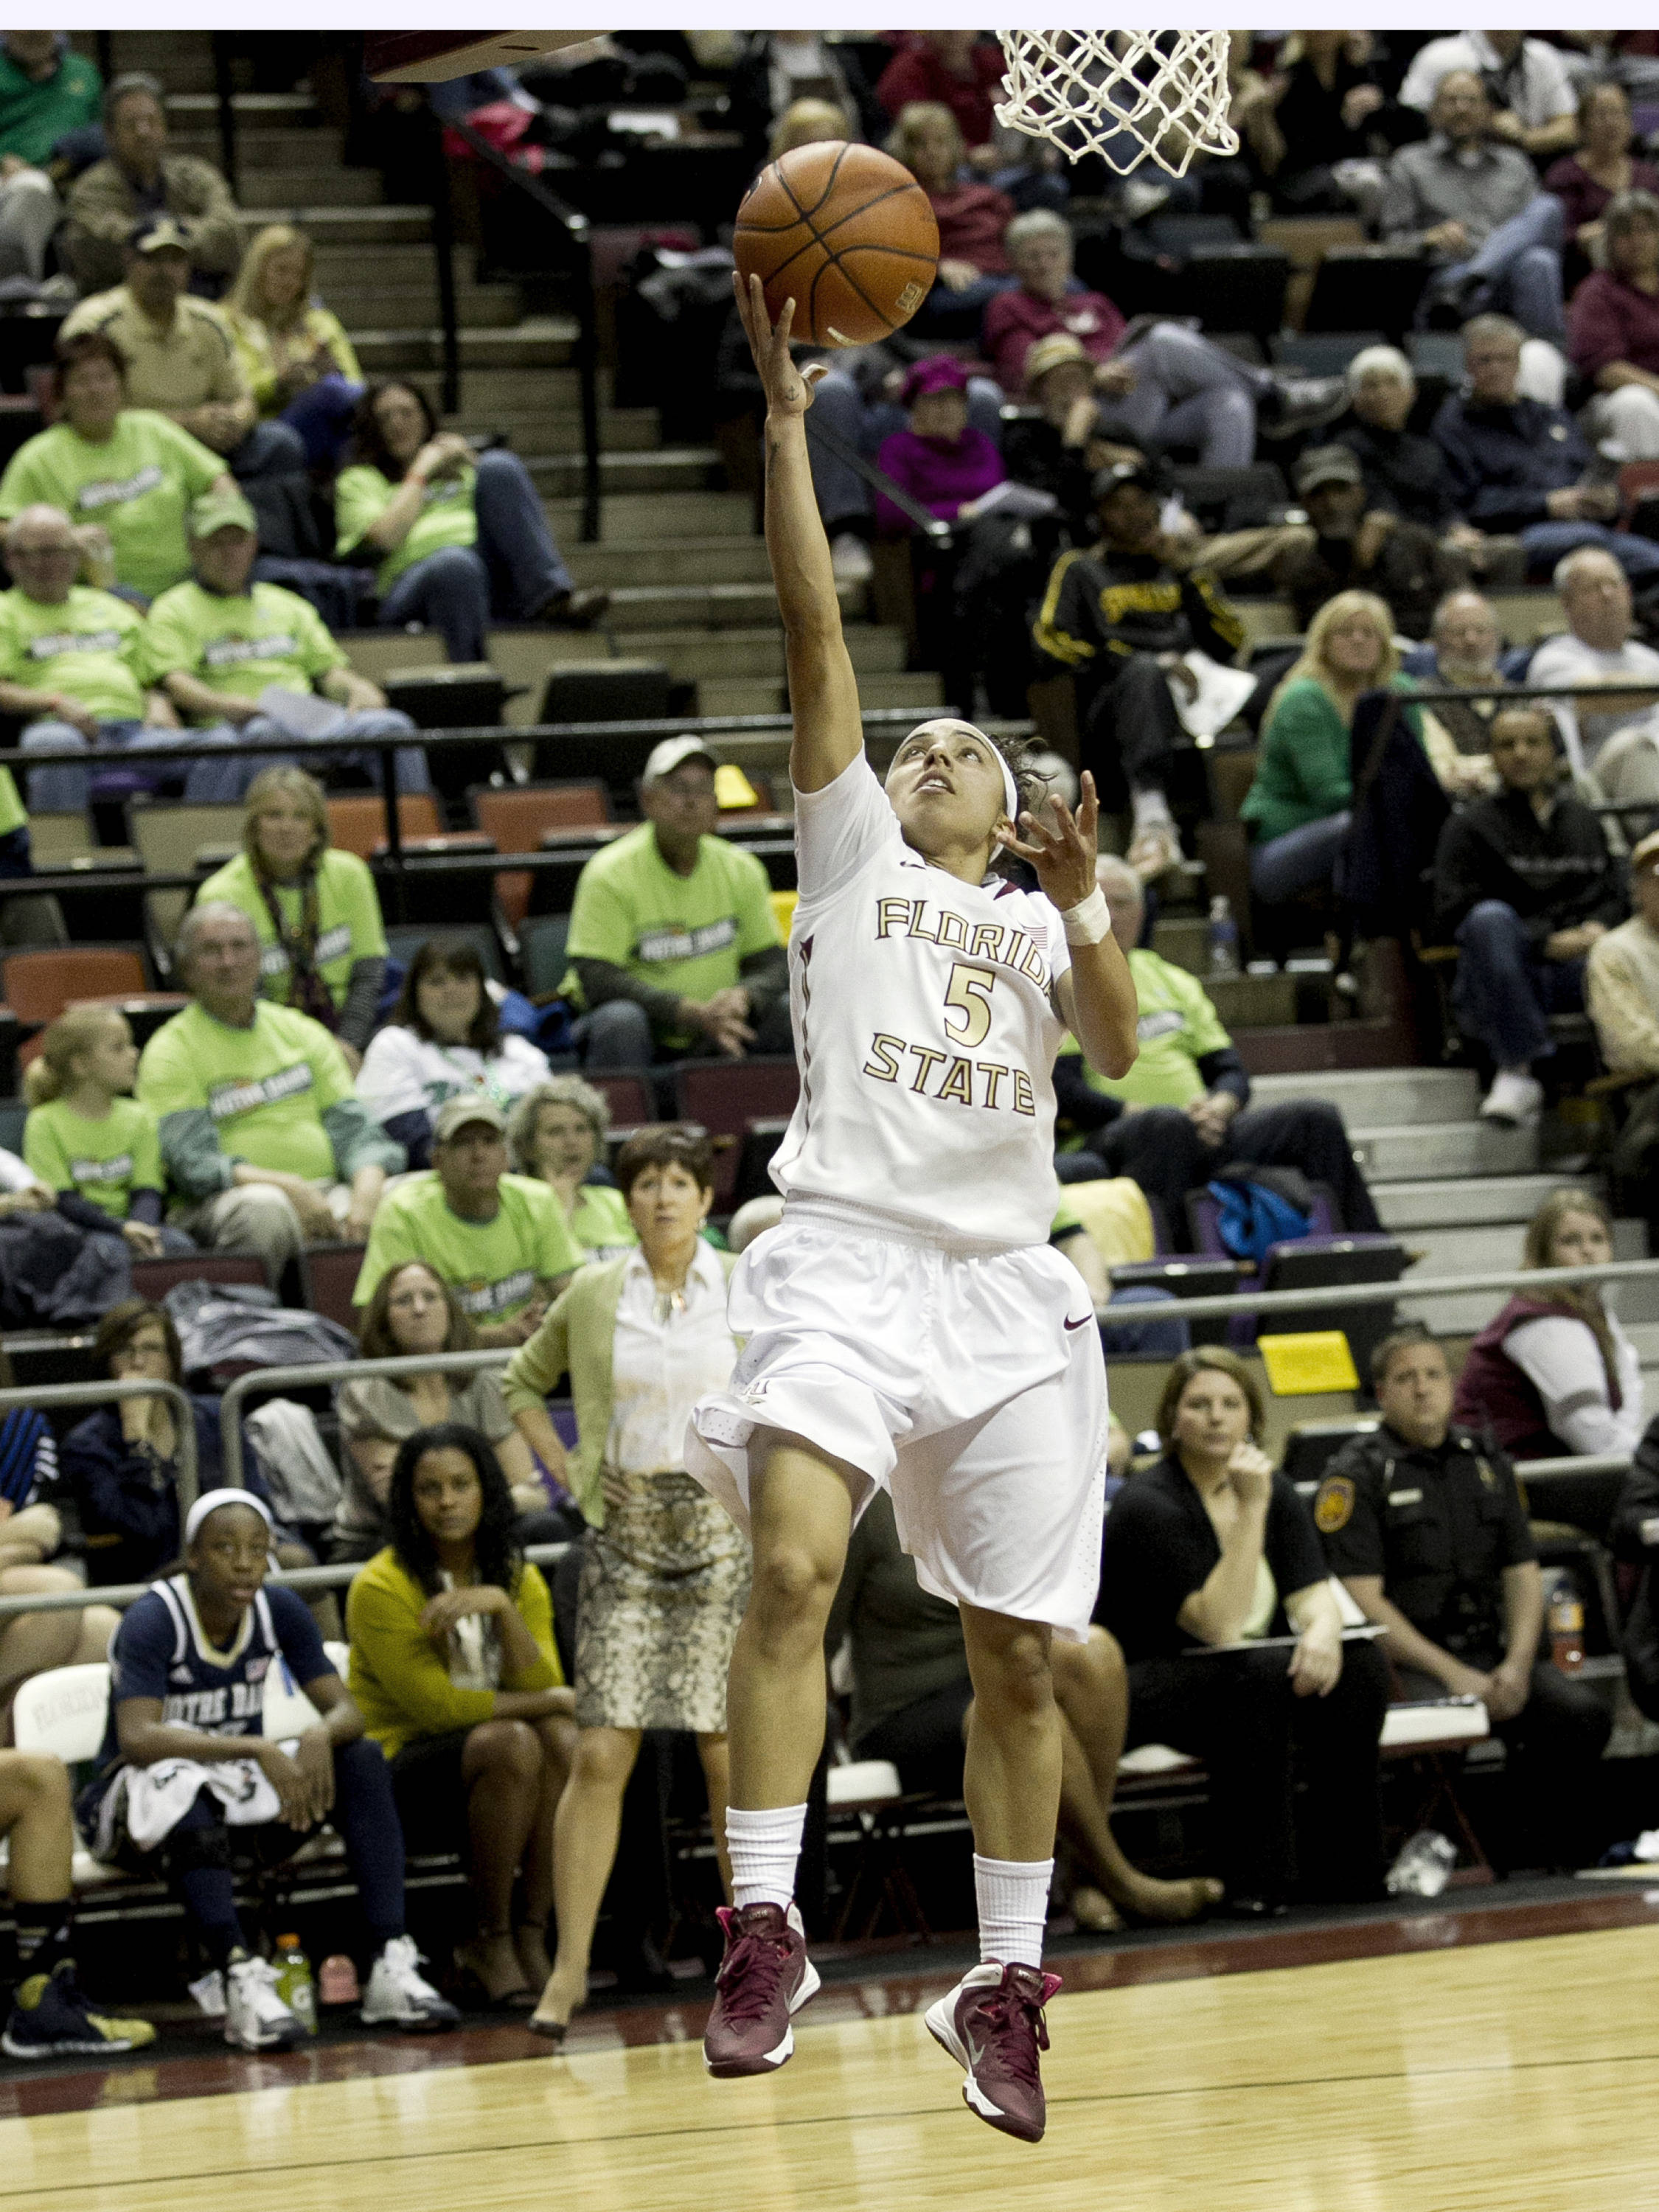 Cheetah Delgado (5), finishing her layup after a steal, FSU vs Notre Dame, 2-06-14, (Photo's by Steve Musco)